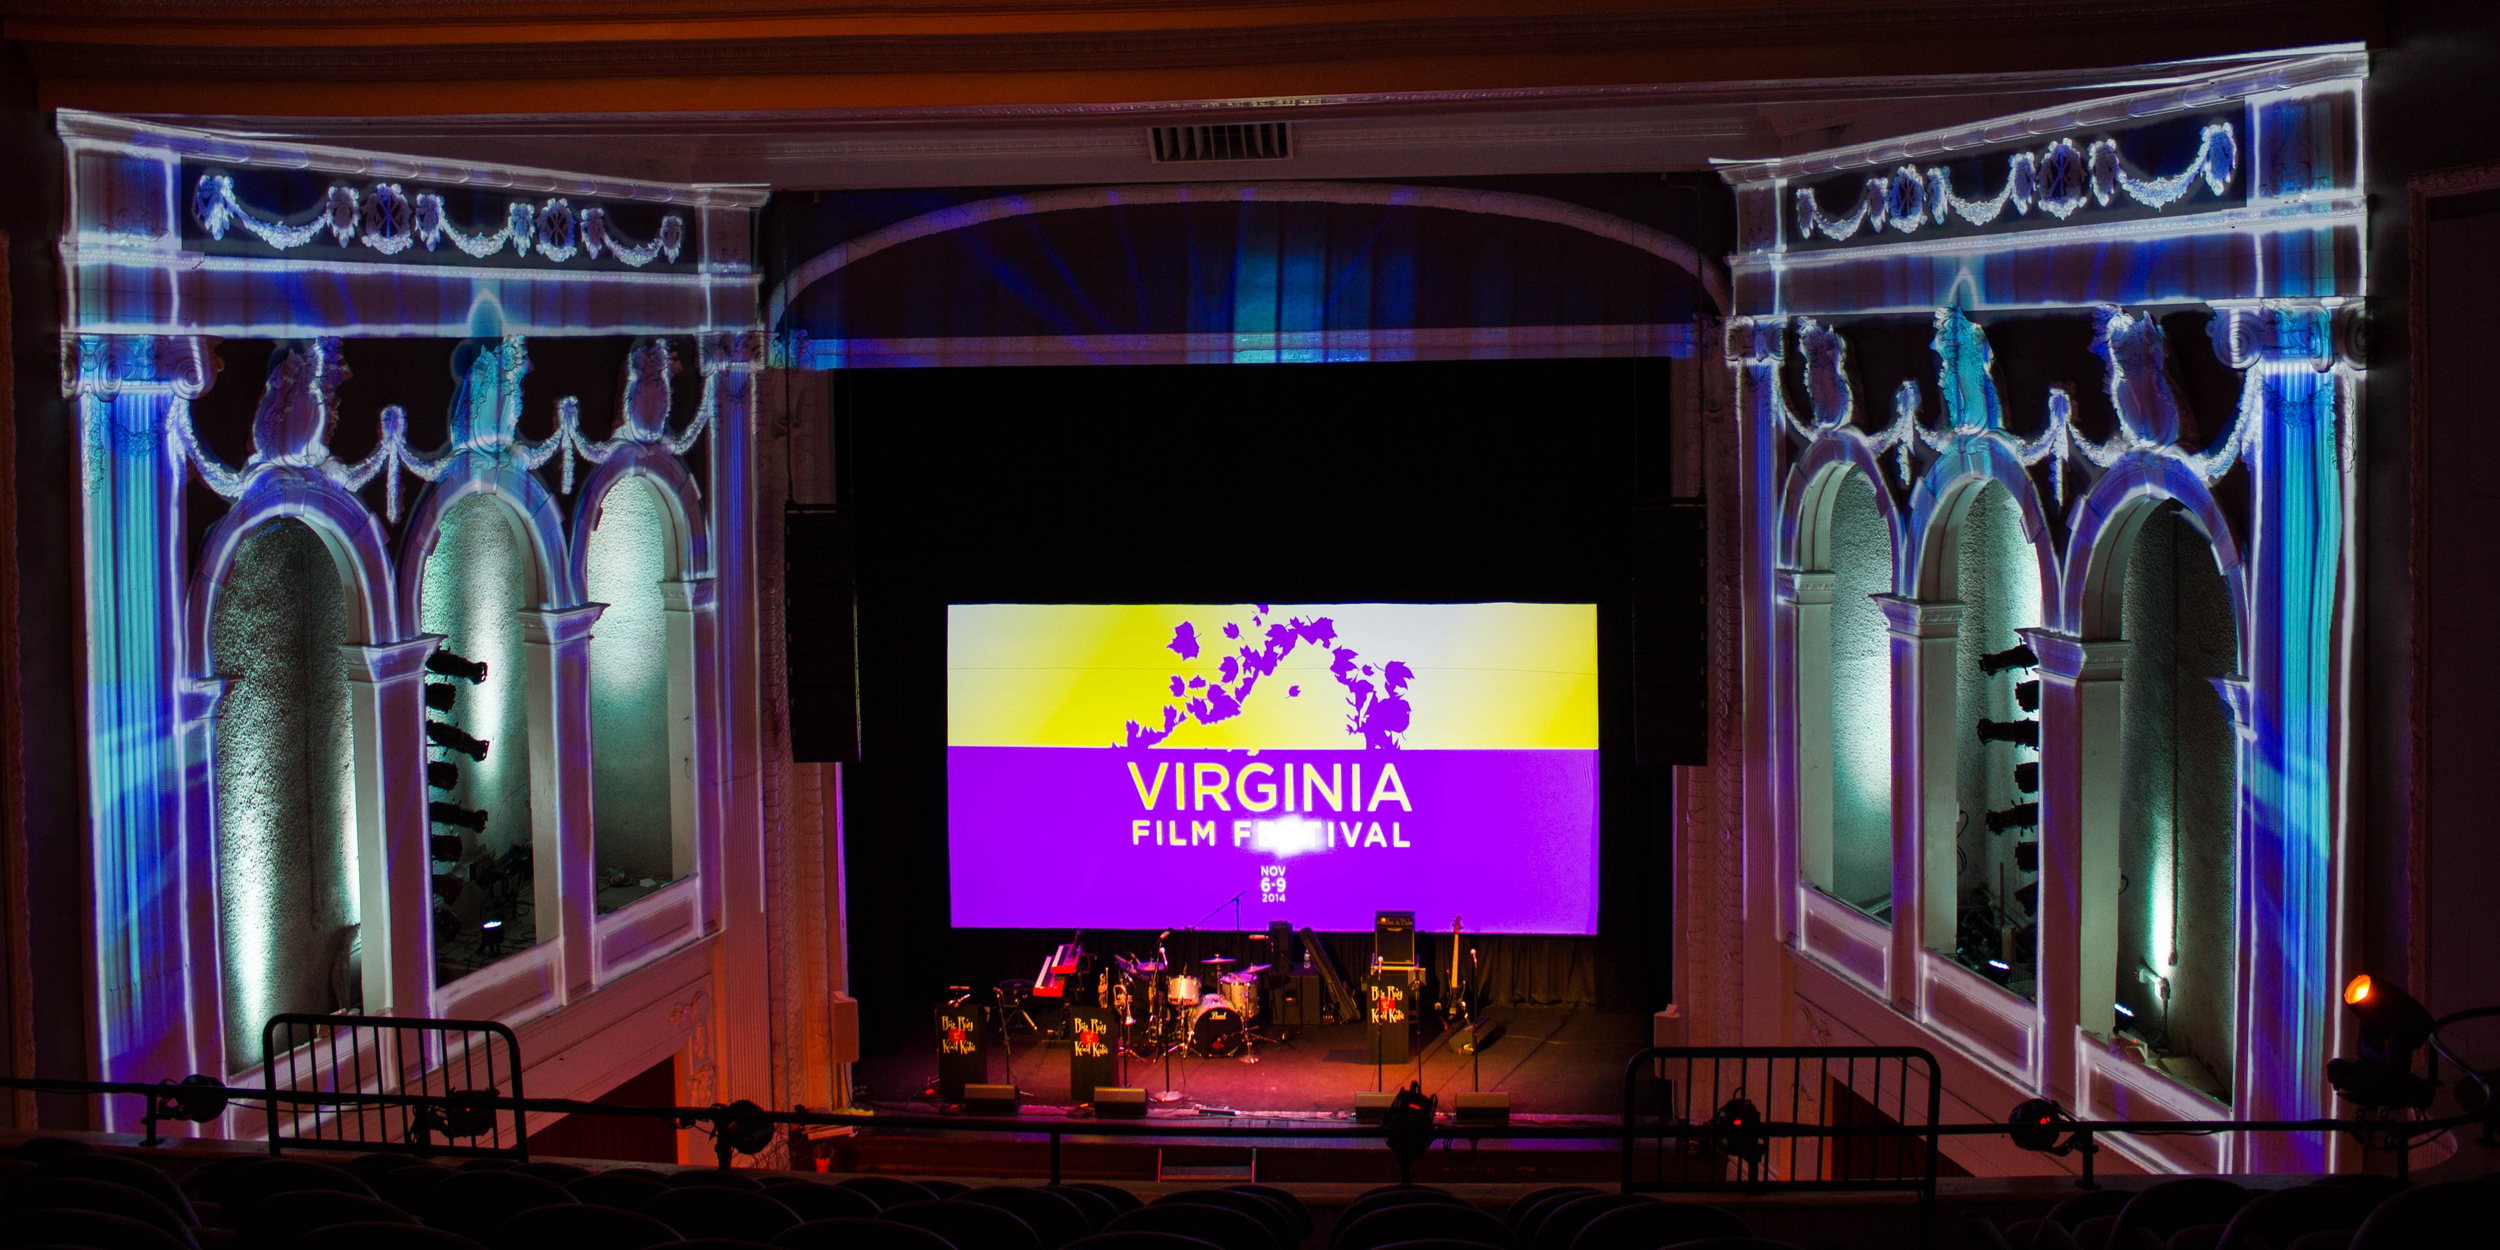 Portfolio . Virginia Film Festival . Projection Mapping